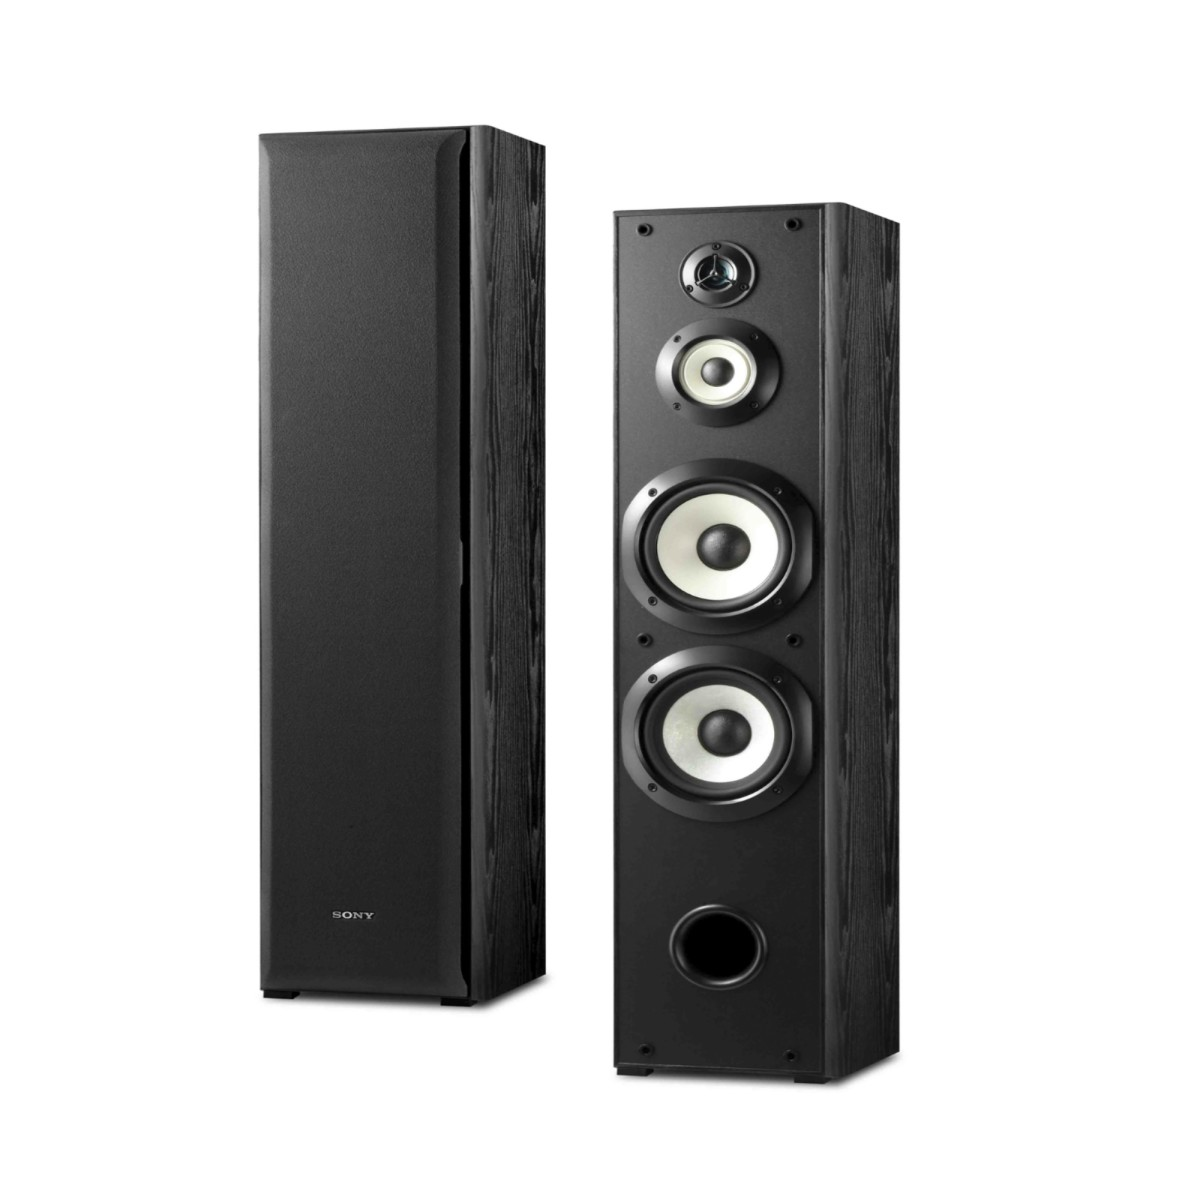 Sony SS F6000 Floorstanding Four Way Speakers